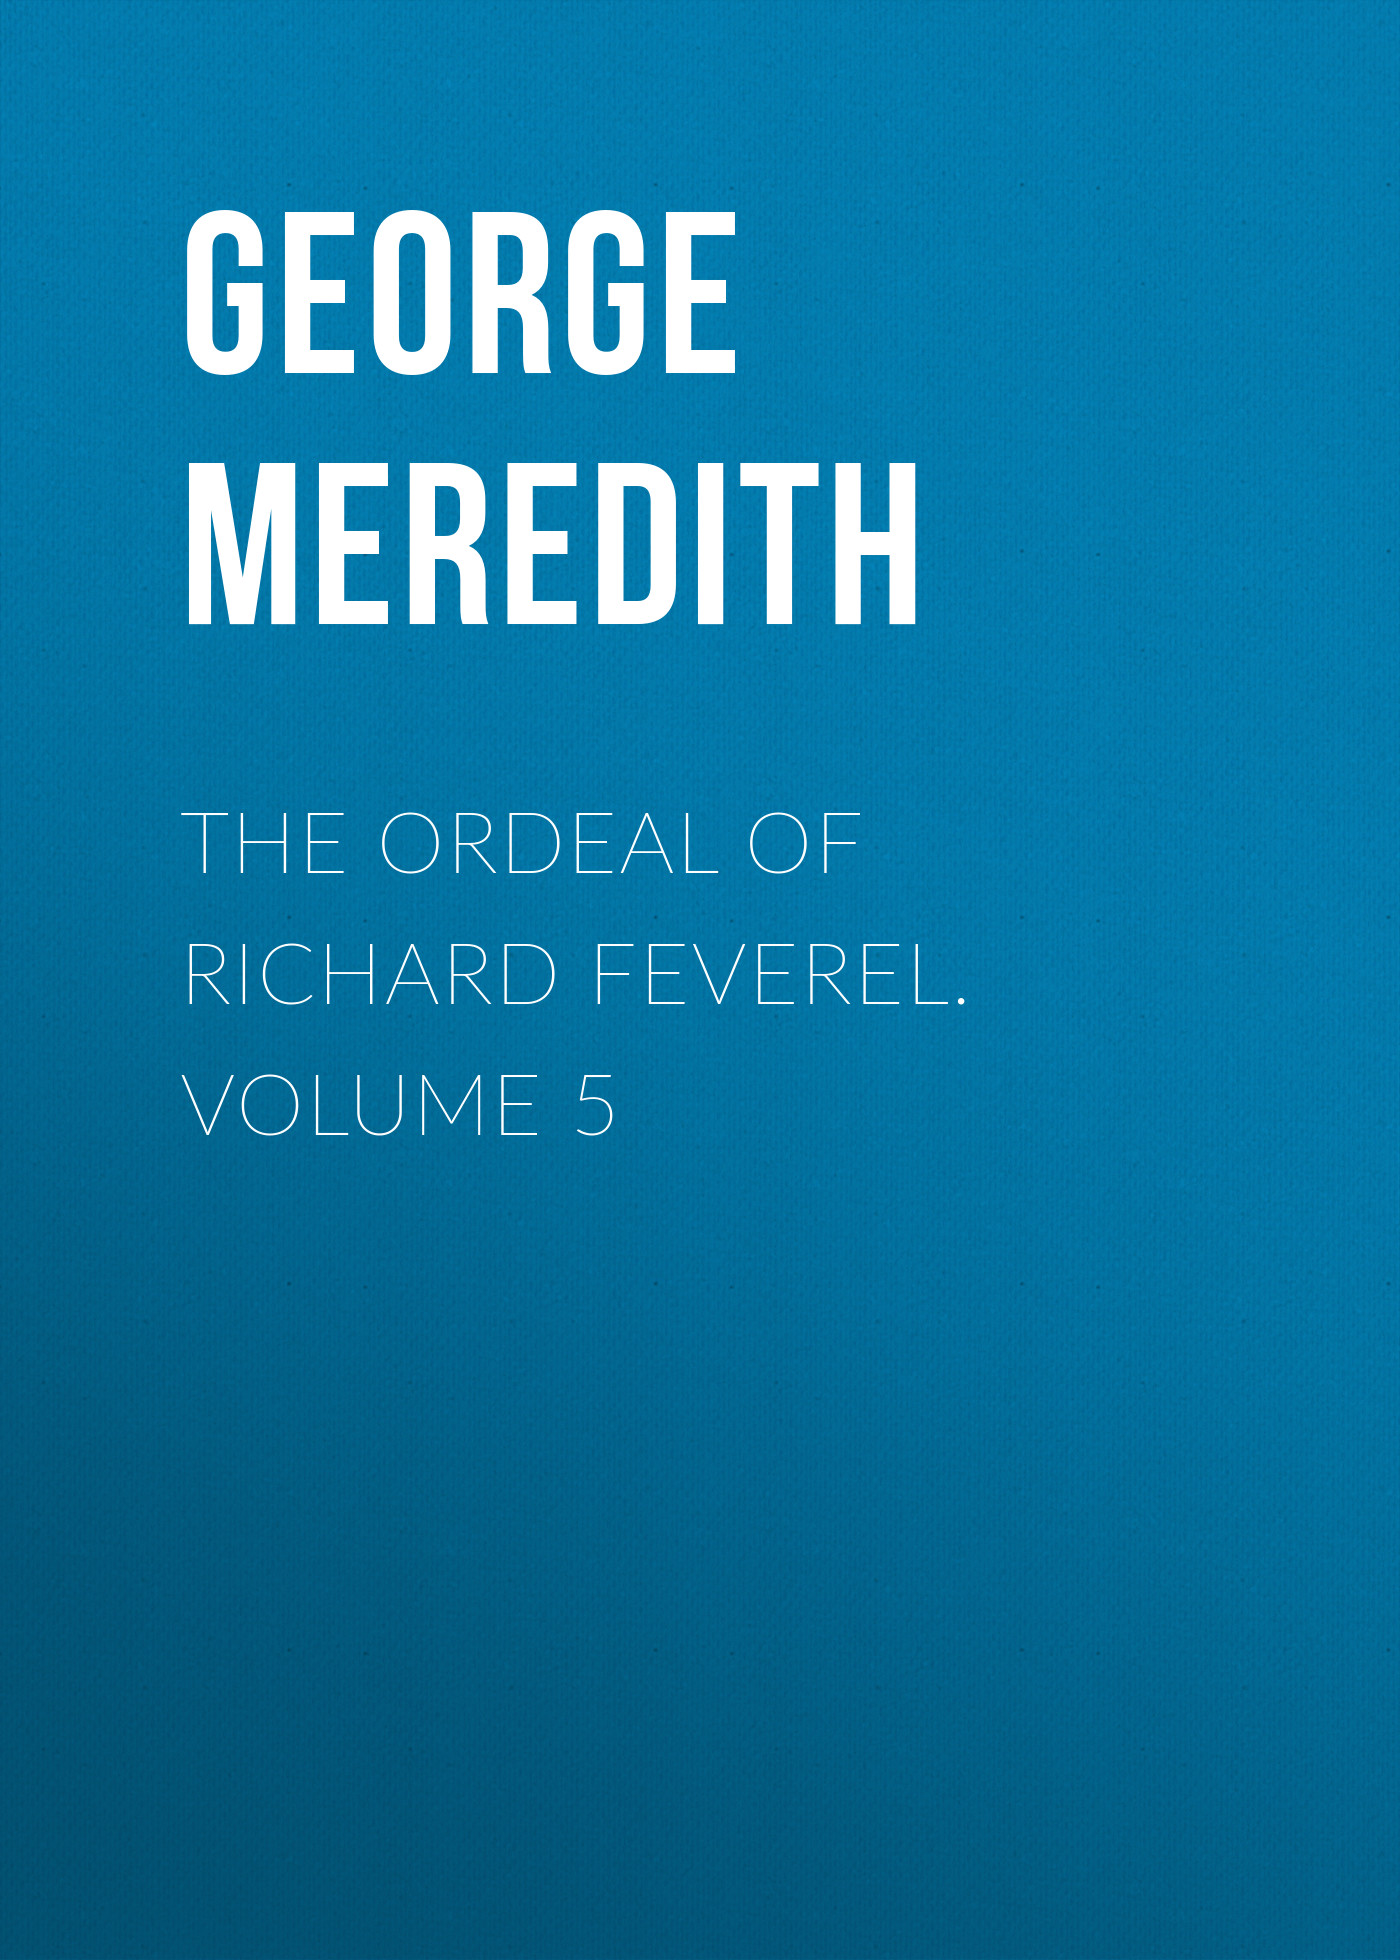 George Meredith The Ordeal of Richard Feverel. Volume 5 george meredith rhoda fleming volume 5